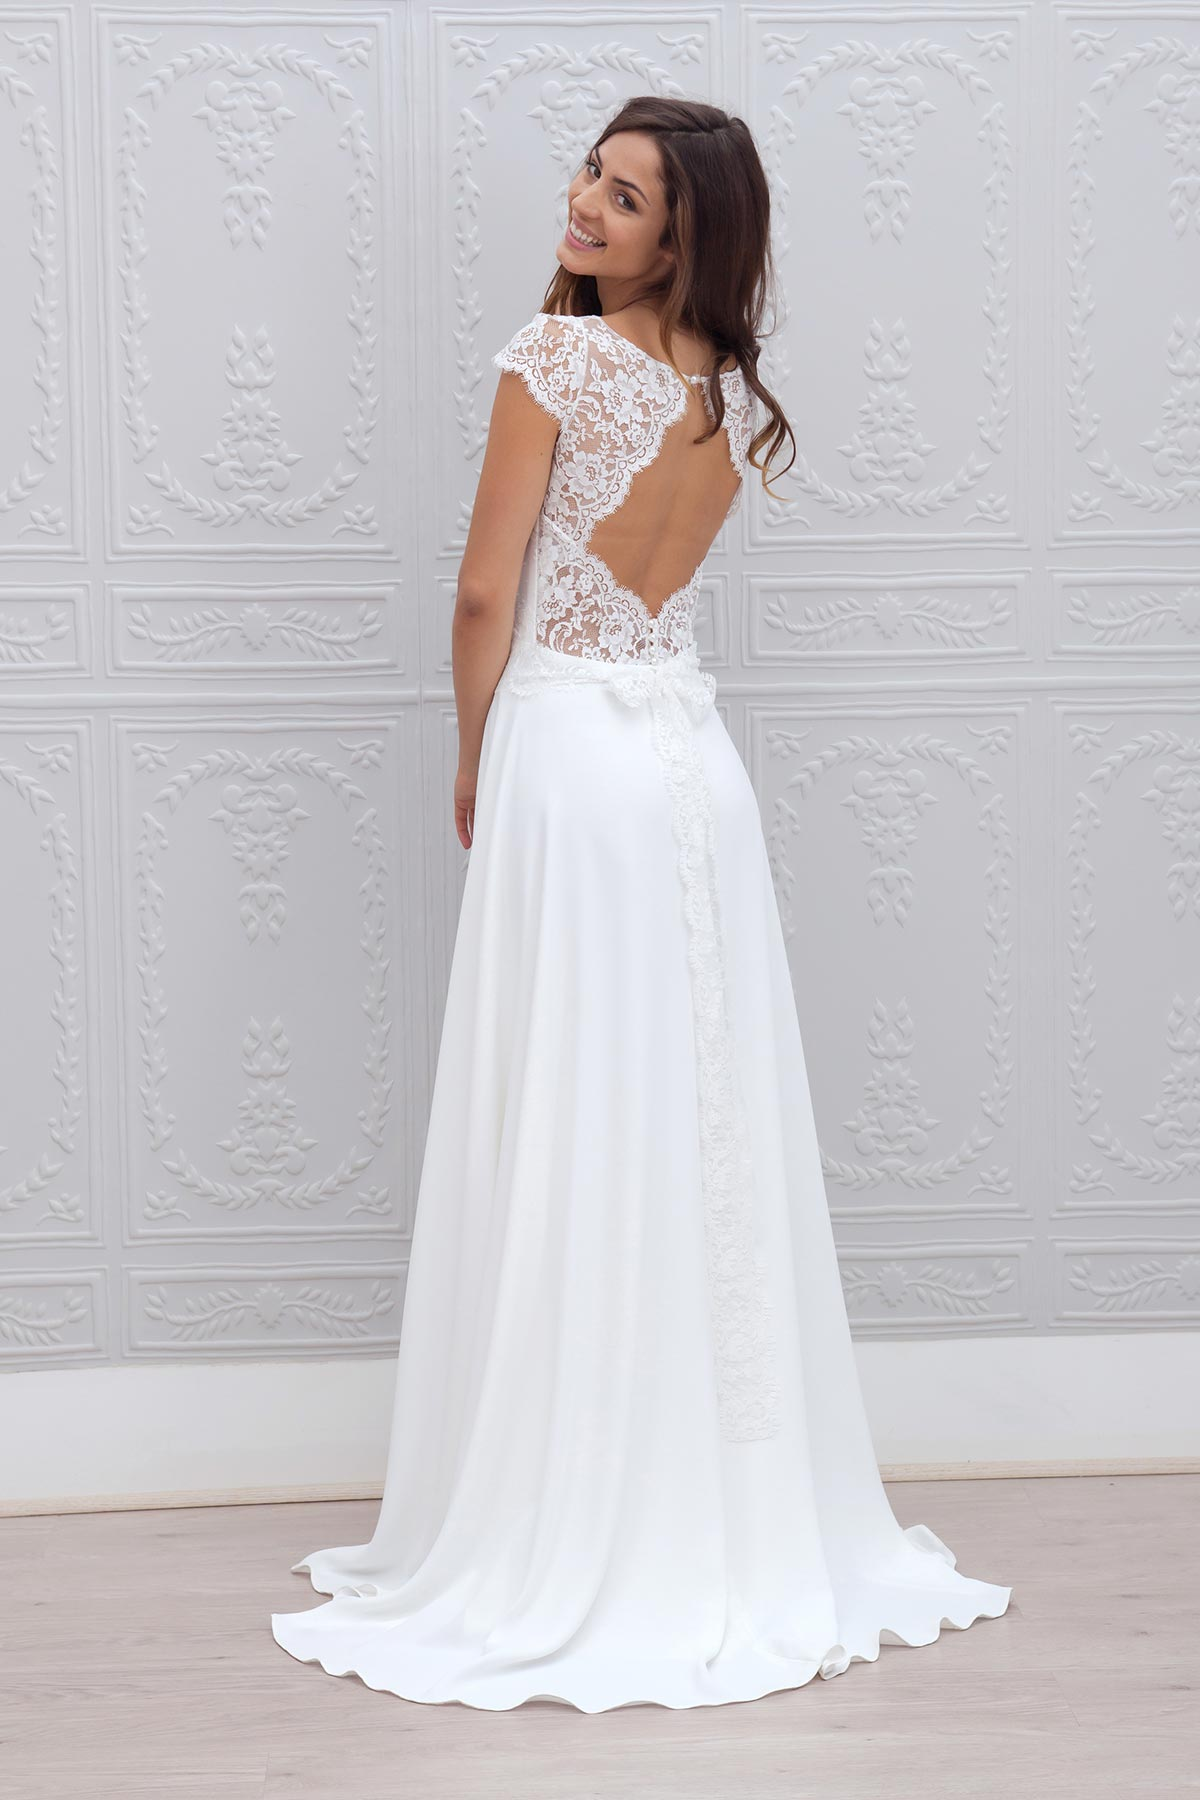 Marie Laporte collection 2015 Marie Laporte Collection 2015 7 - Blog Mariage